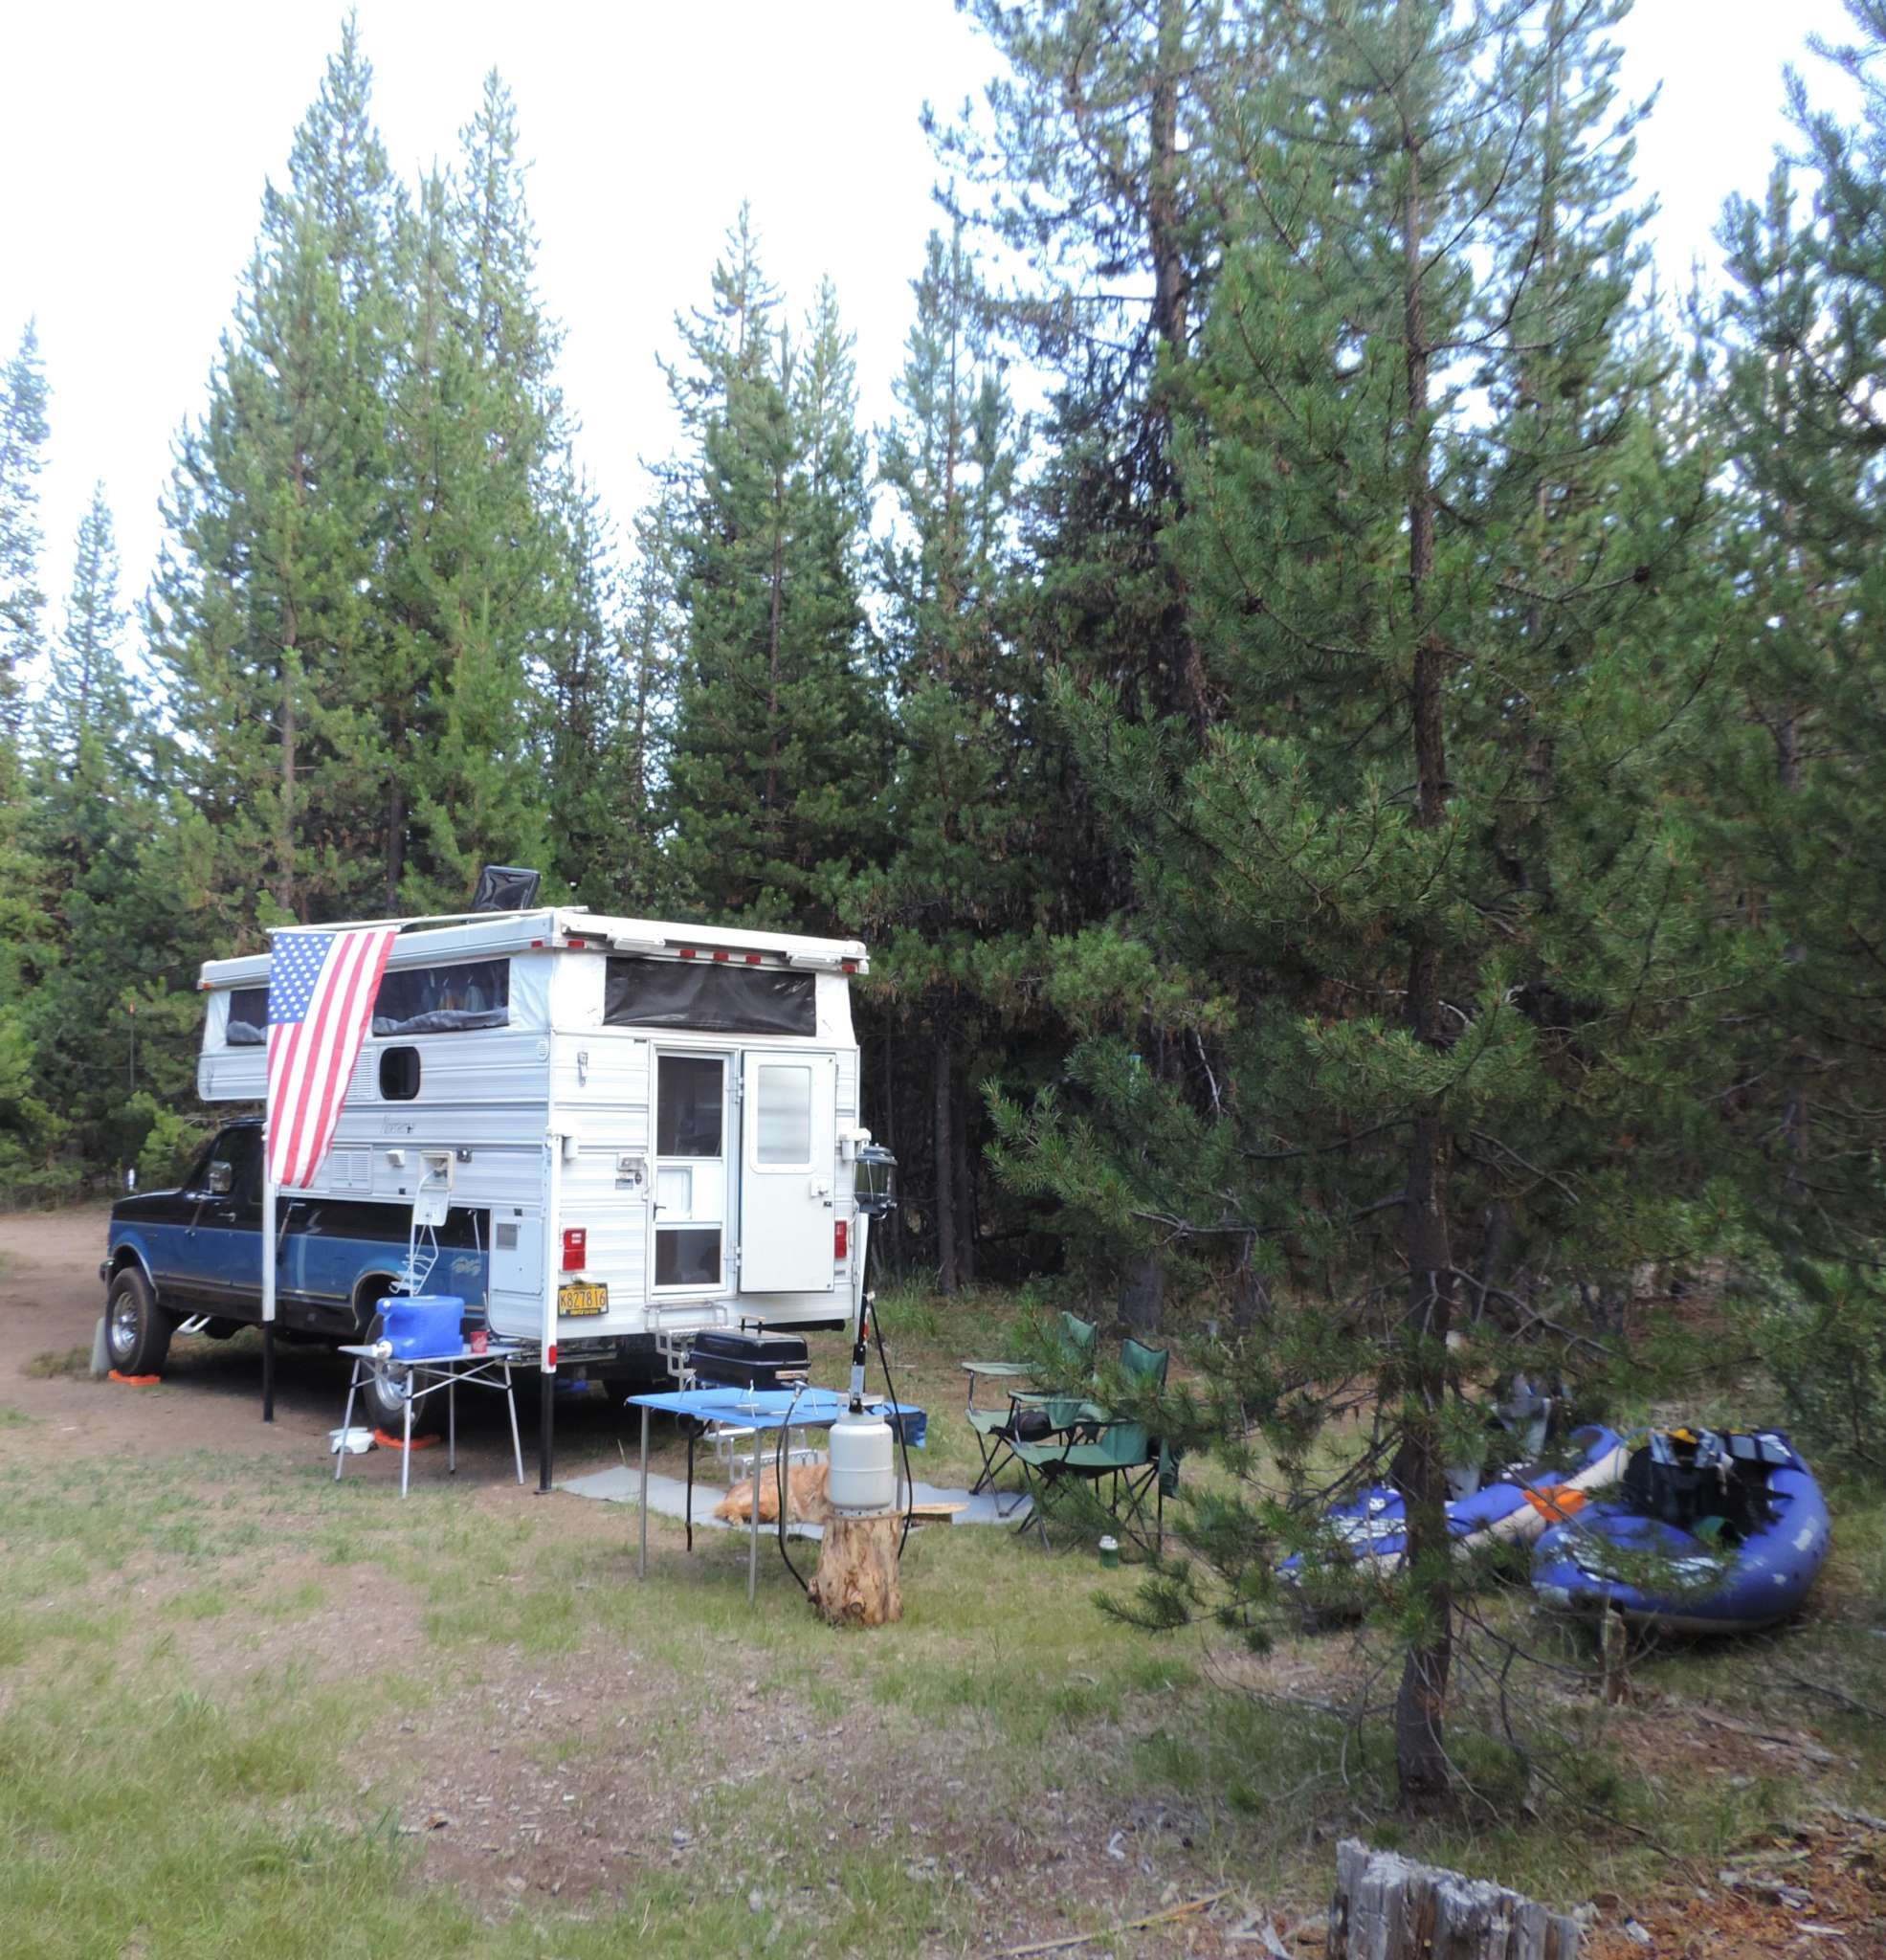 Linda and her husband know how to do dispersed camping right!